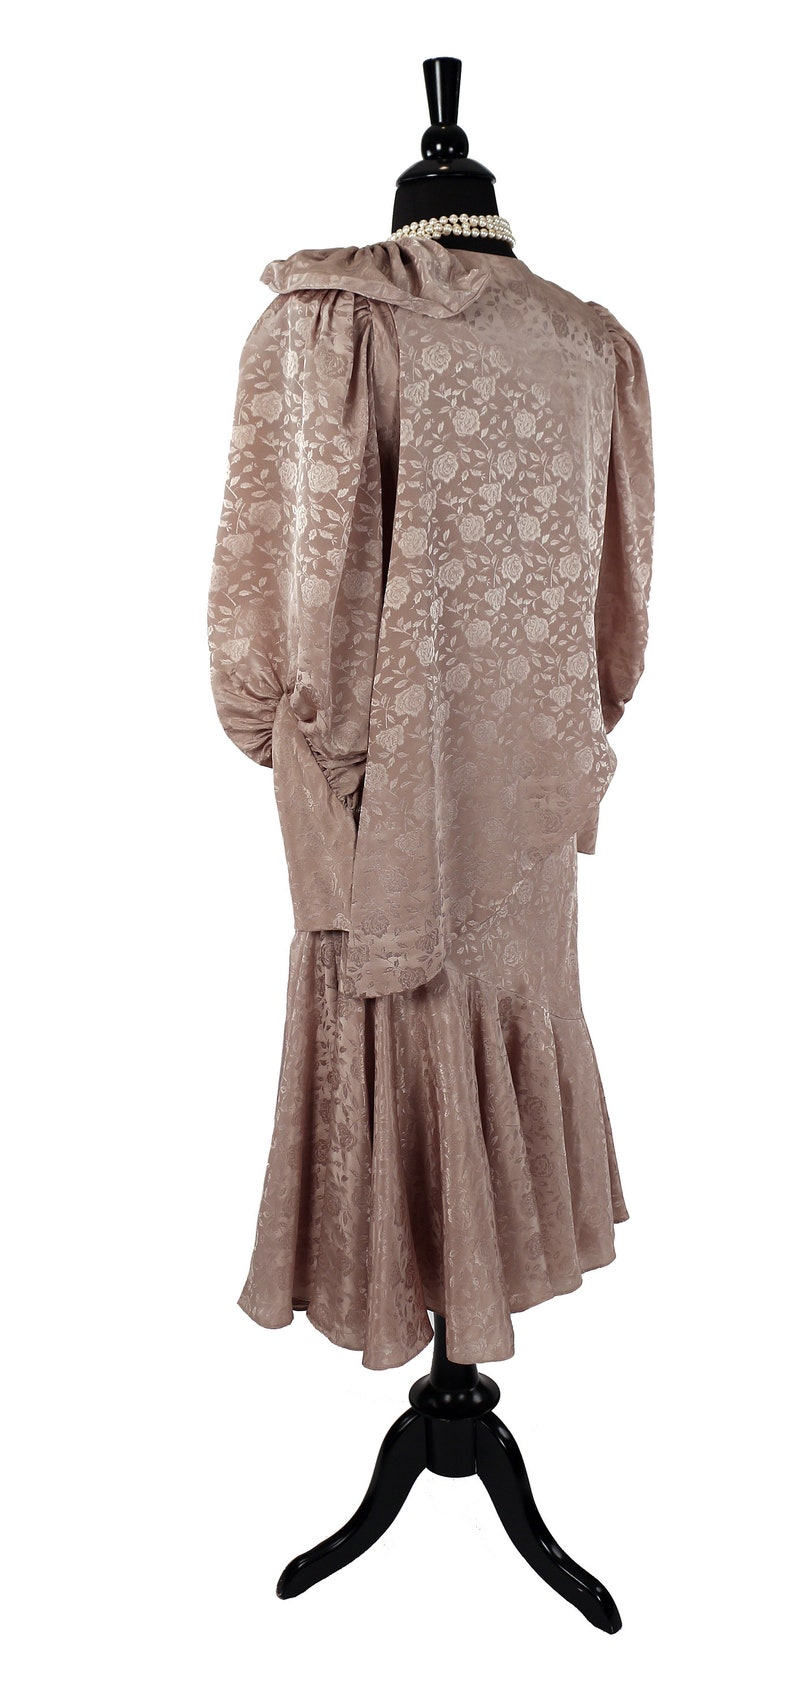 Gauntlet Cuff Trumpet Hem Nude Jacquard 1980/'s Dy/'Anne Dramatic 1 Shouldered Party Dress /& Shrug Balloon Sleeves Avant Garde Style